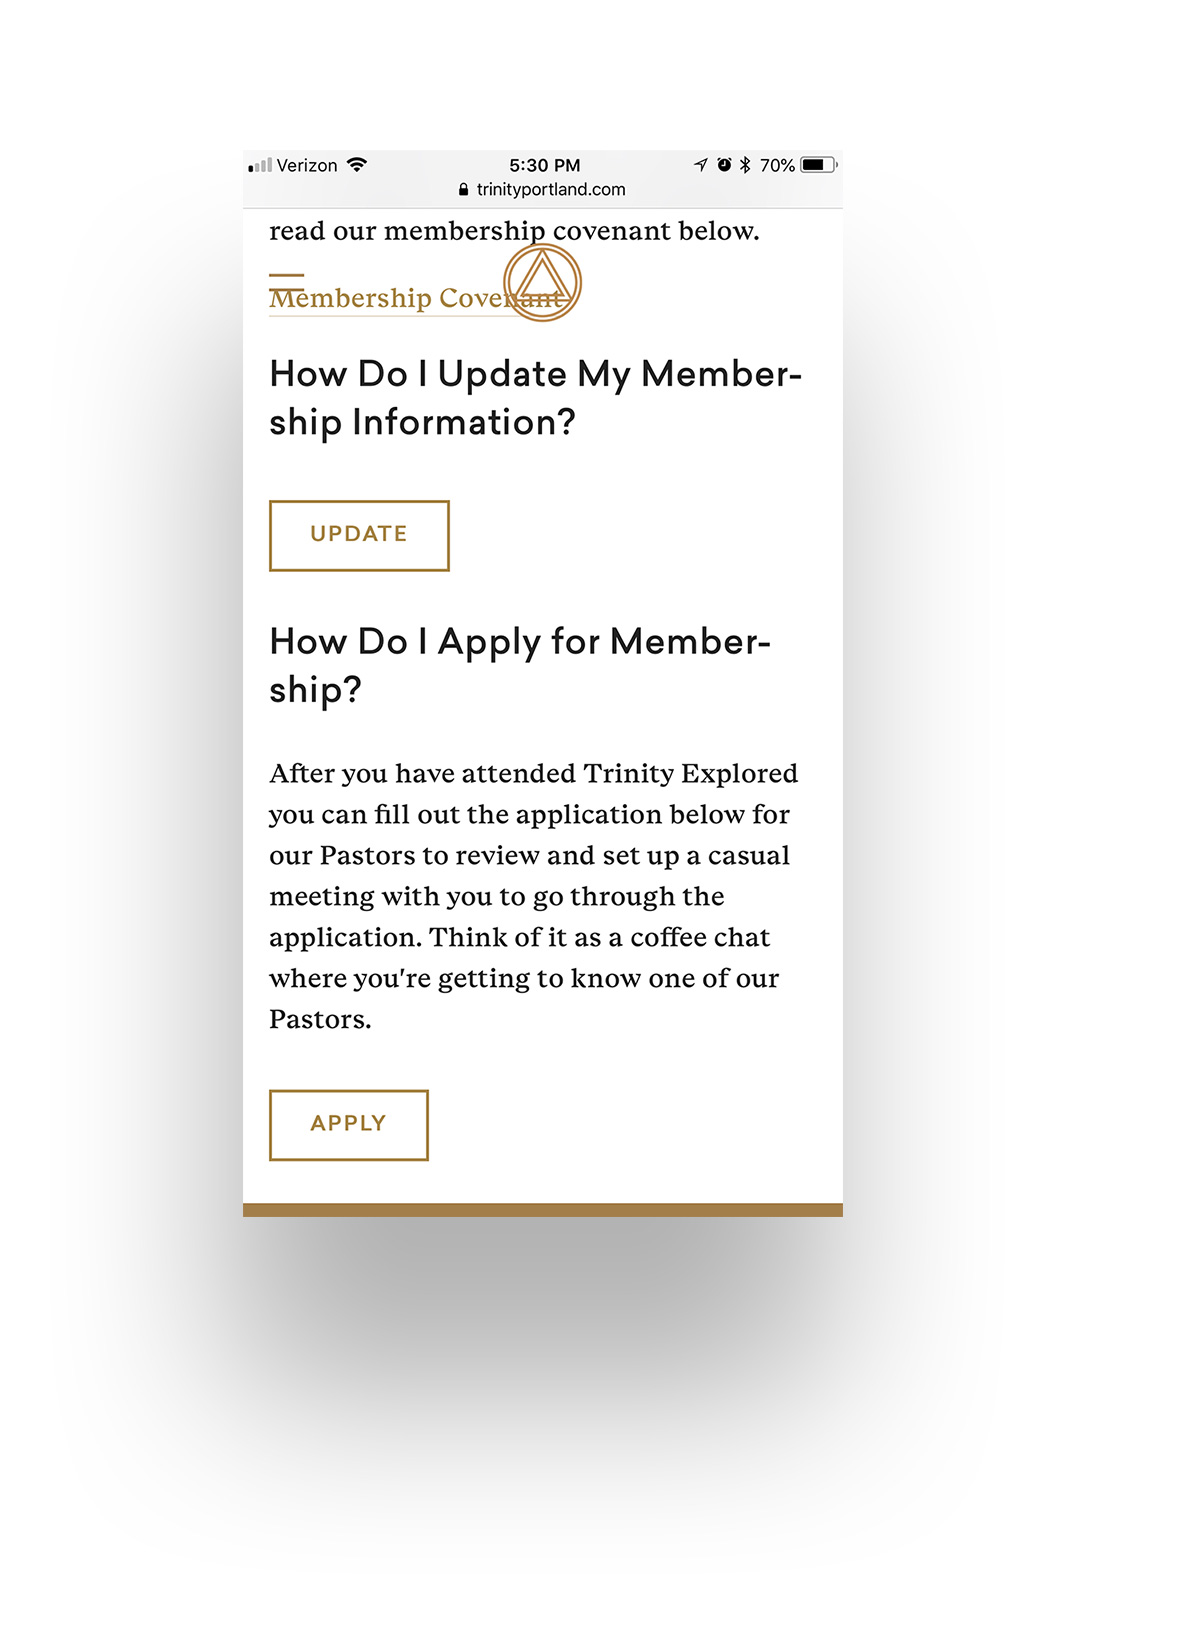 Membership made easier. - Whether you're a member wanting to update your membership information or someone interested in membership, our new membership page will help you accomplish all things in regards to membership.TrinityPortland.com/Membership